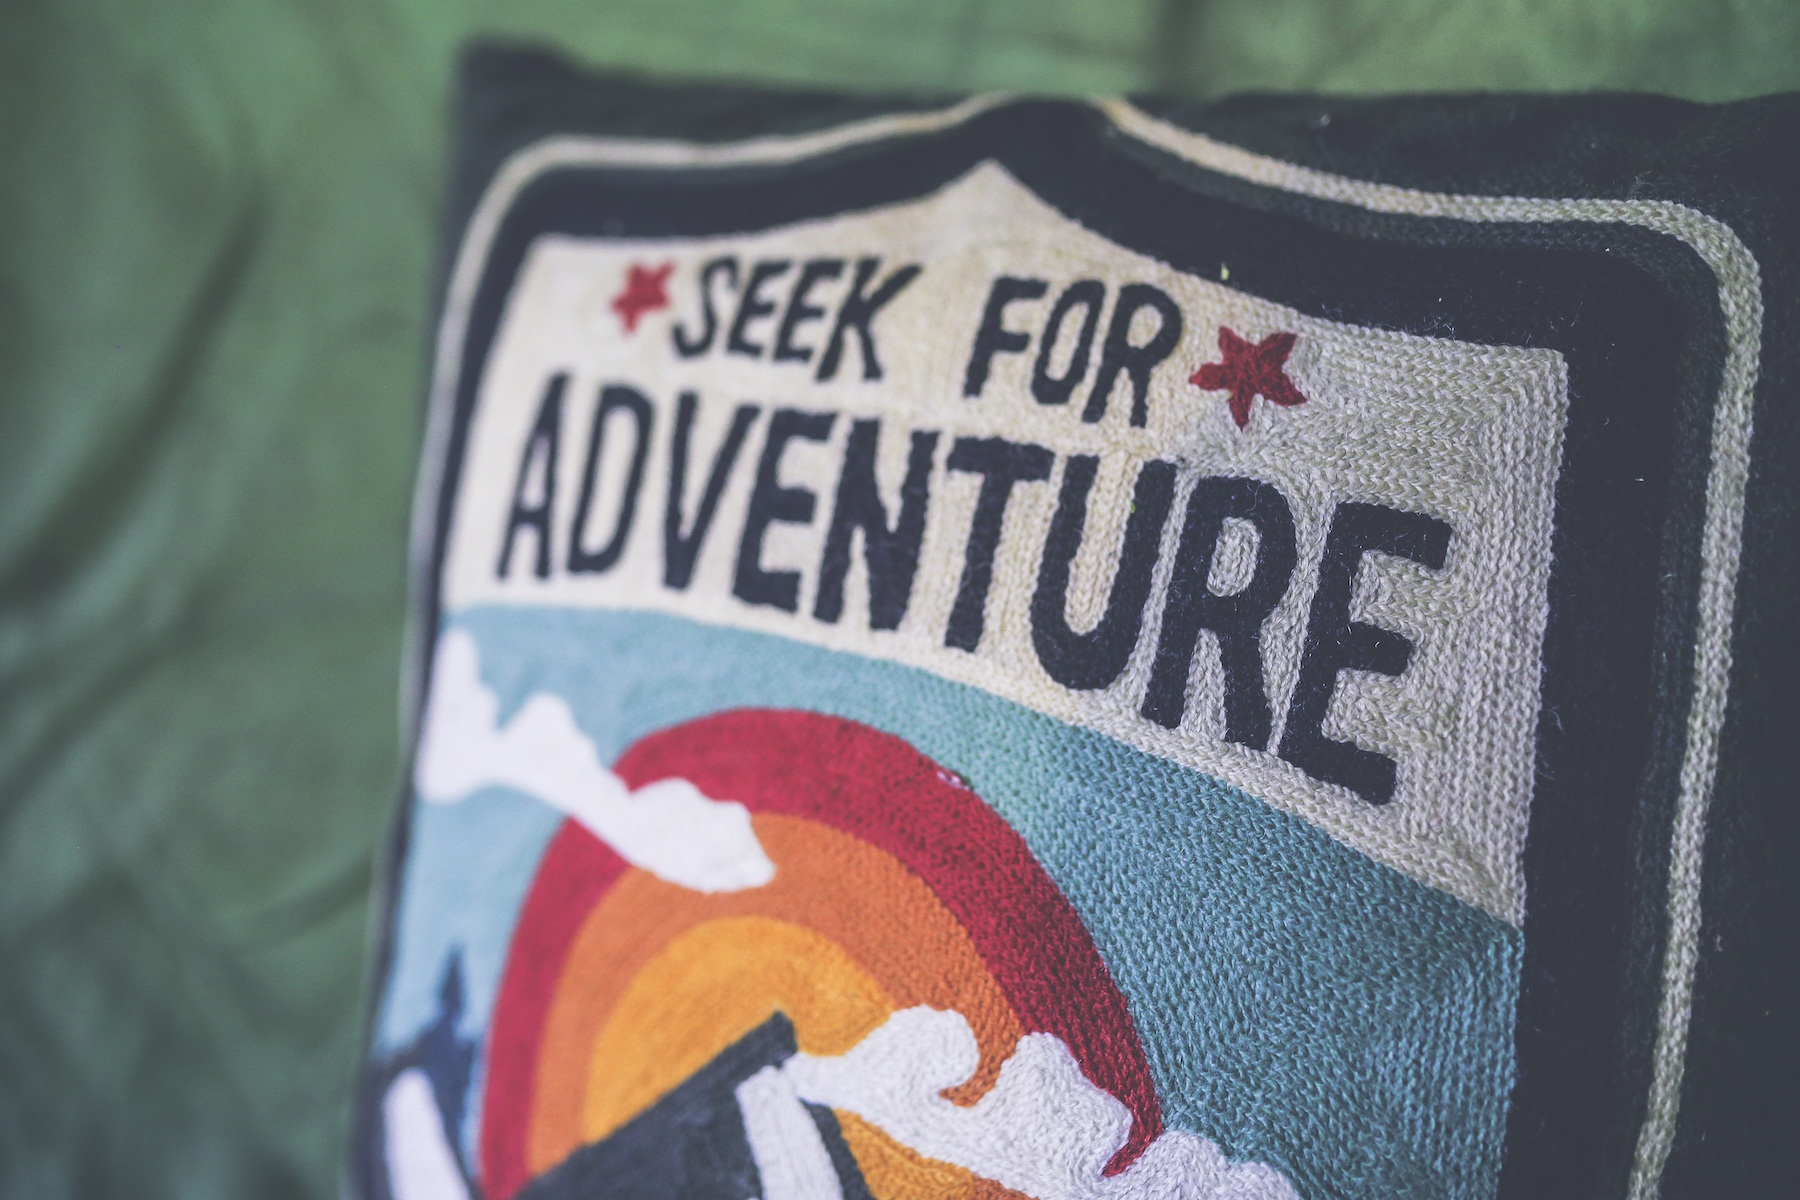 seek-for-adventure